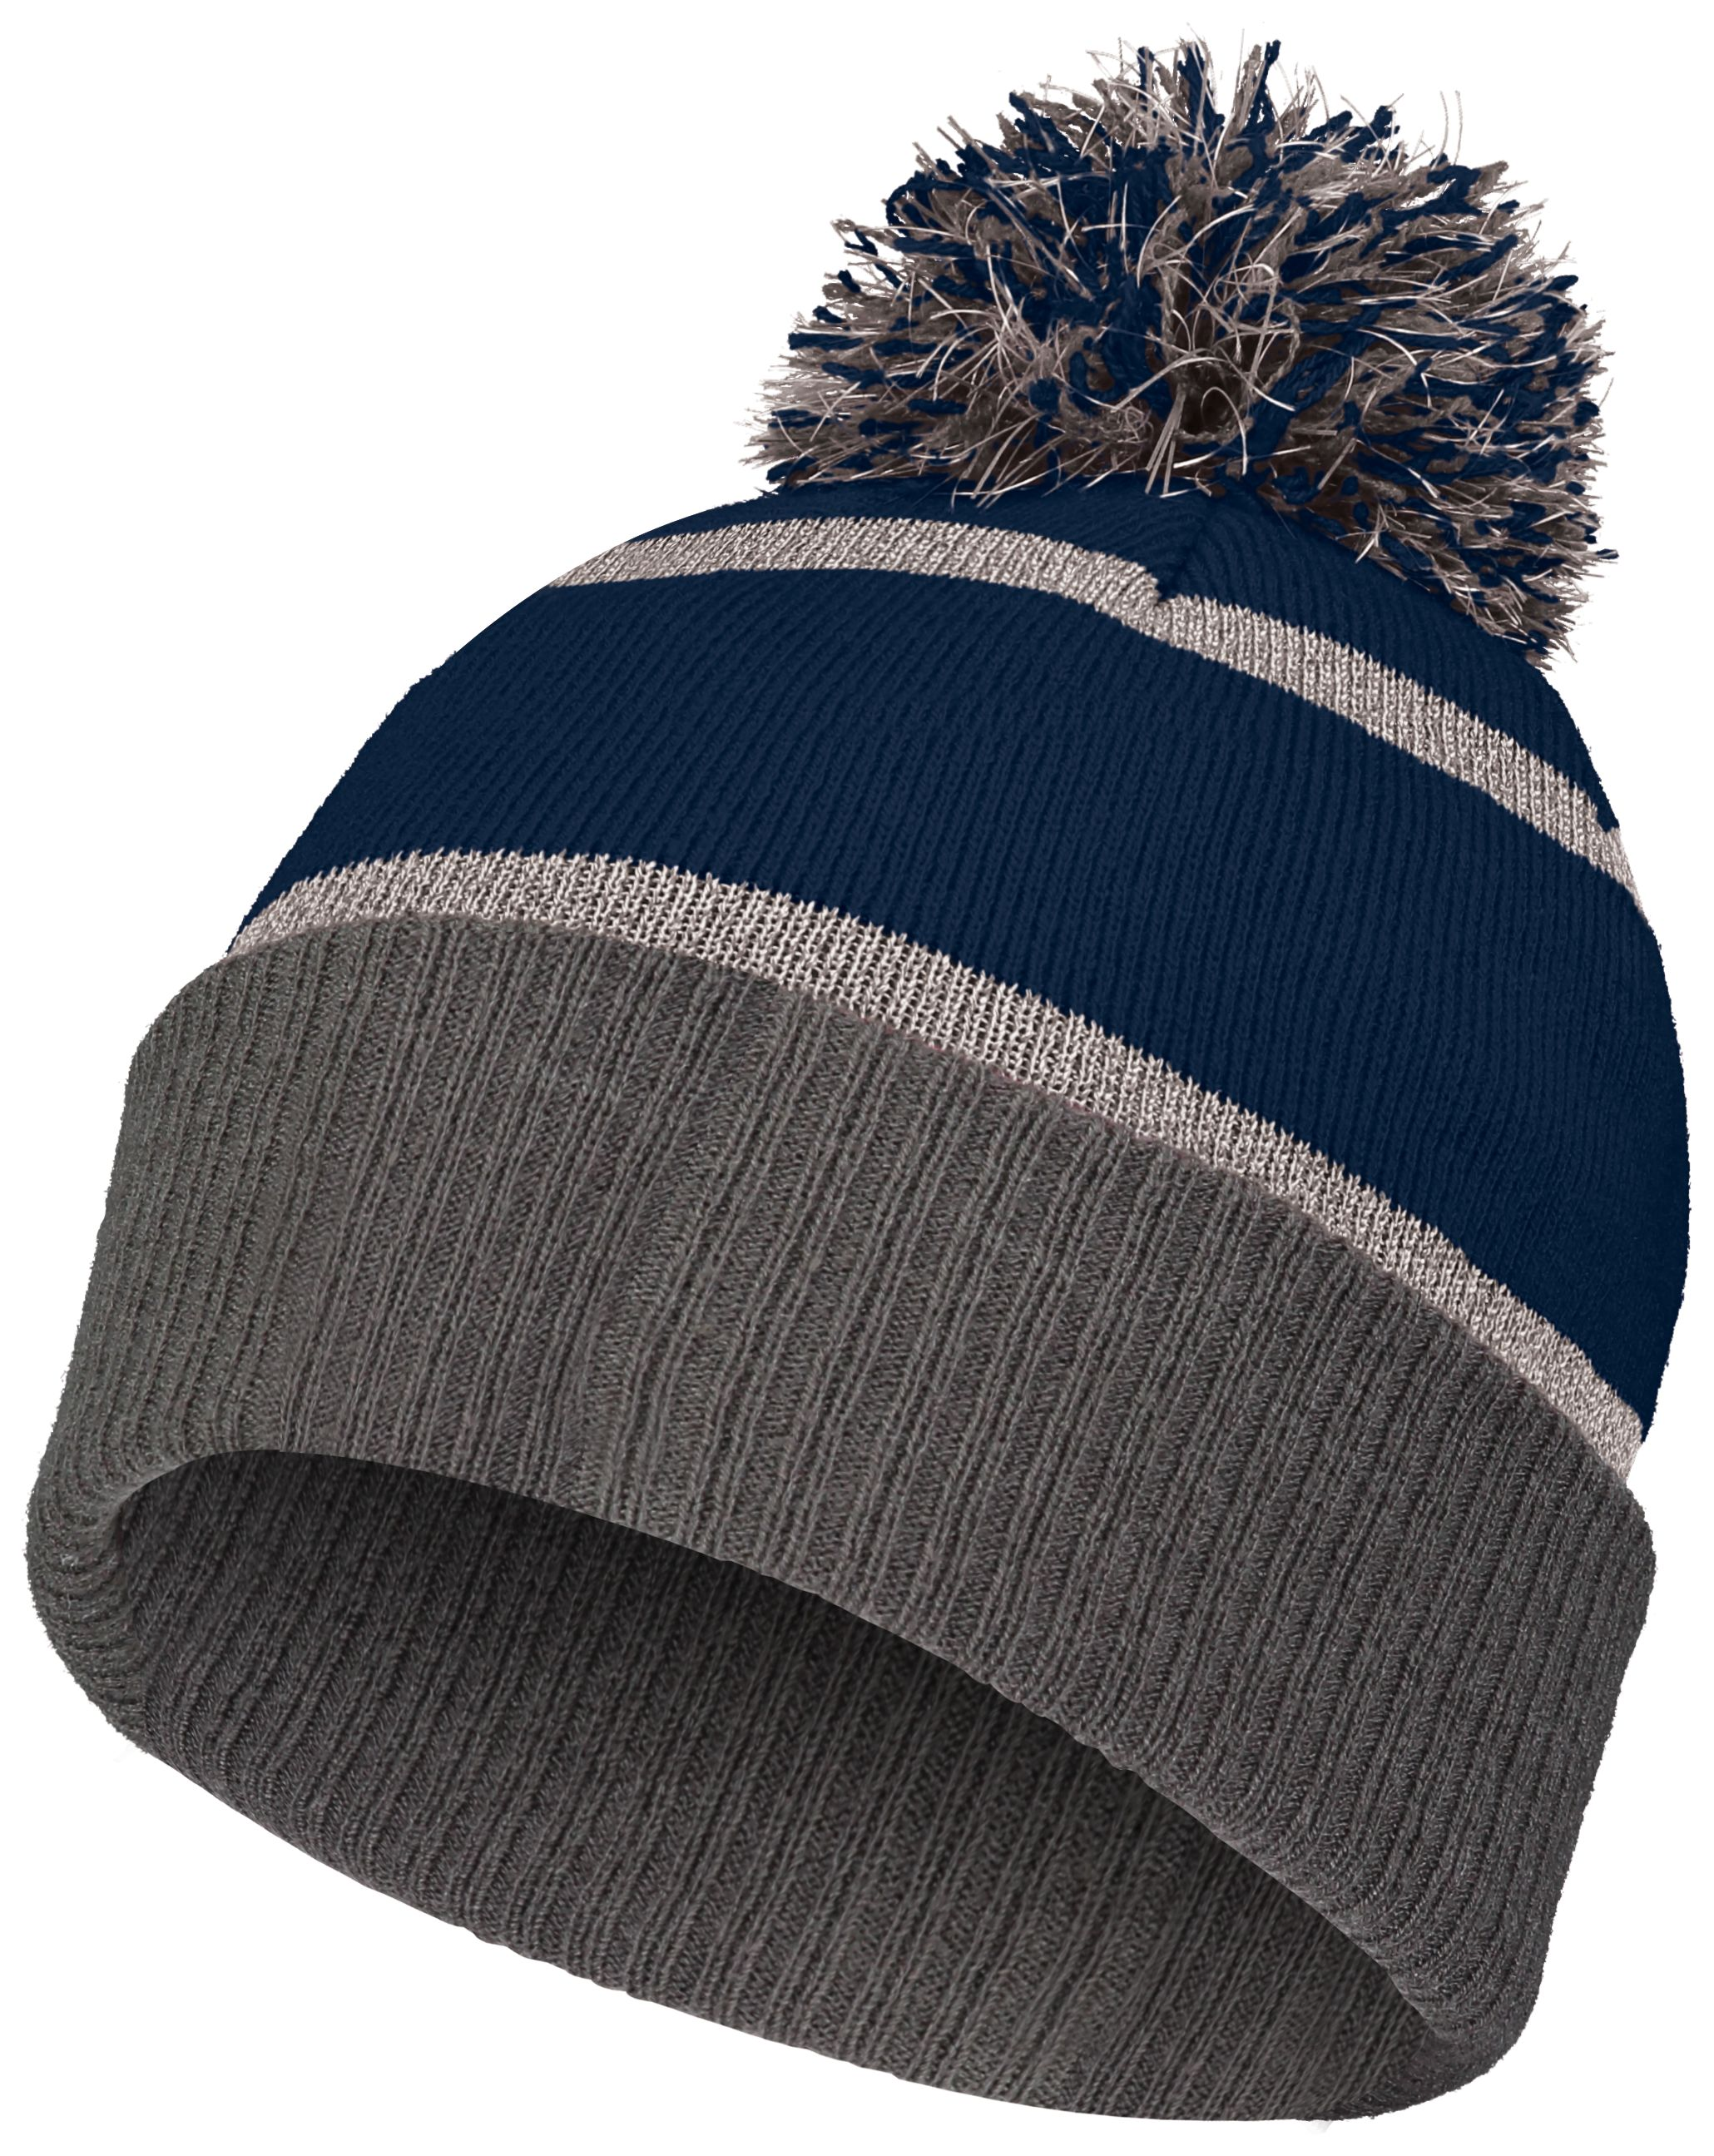 Reflective Beanie - NAVY/CARBON